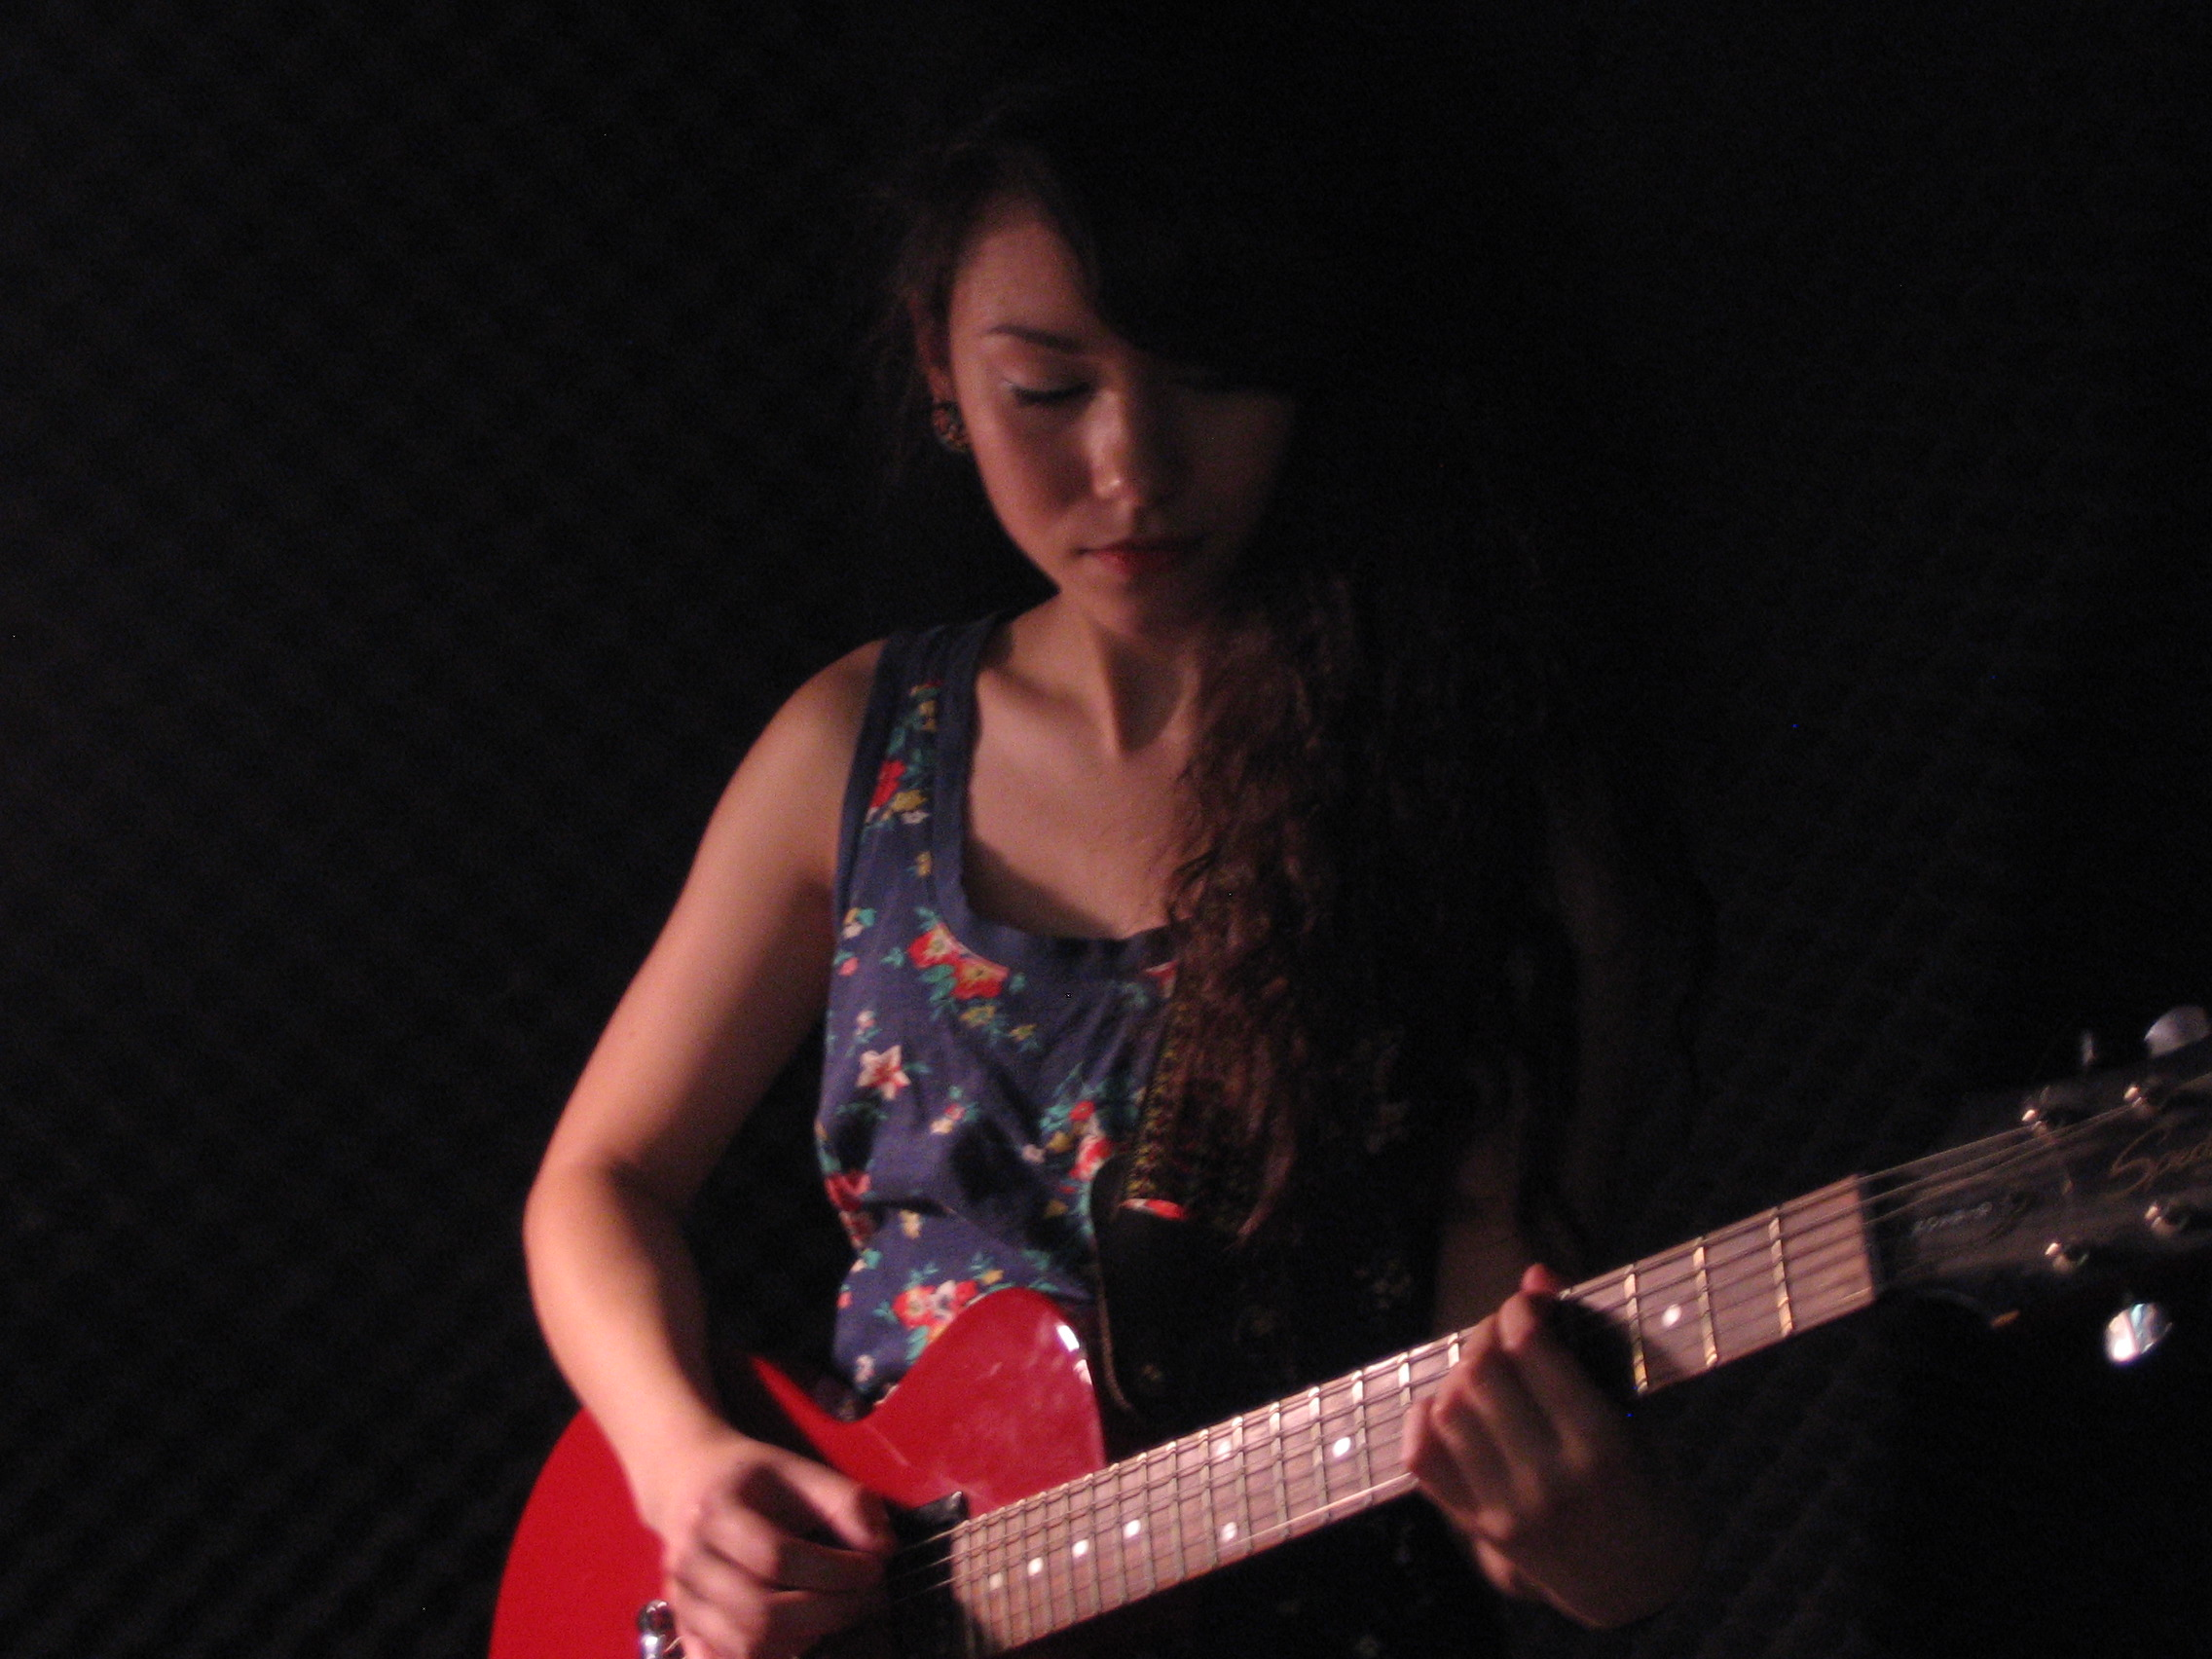 living room concerts. Mree  The Girl with the Red Guitar Live on Echoes Living Room Concerts Blog